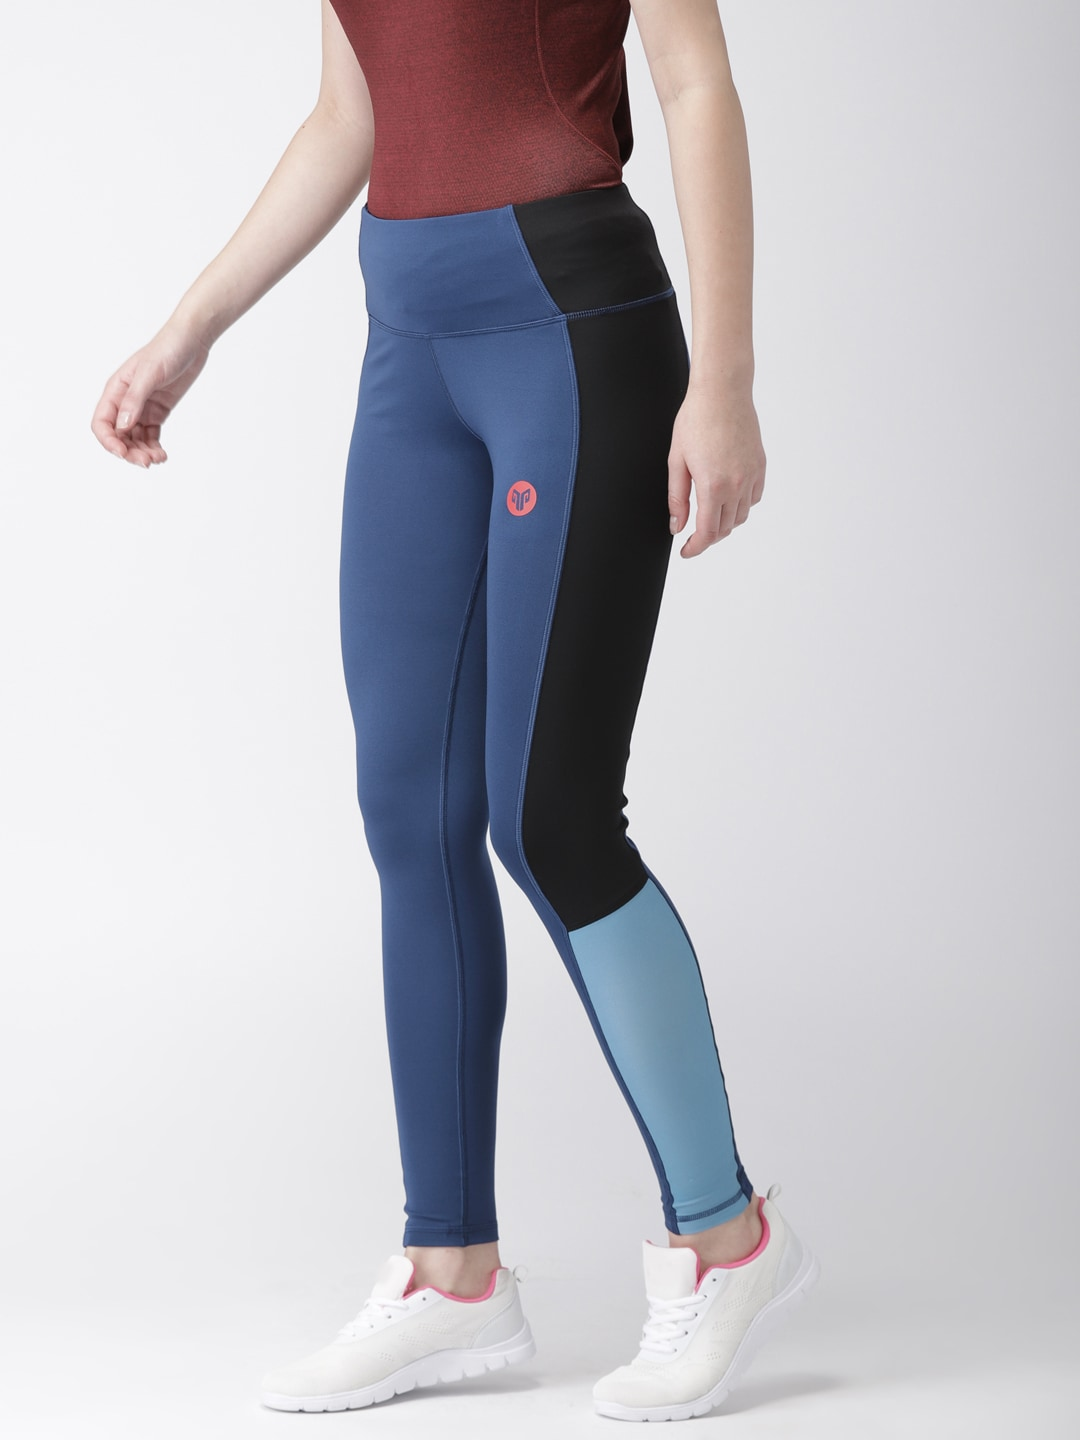 Sports Tights - Buy Sports Tights online in India 3f35777e65